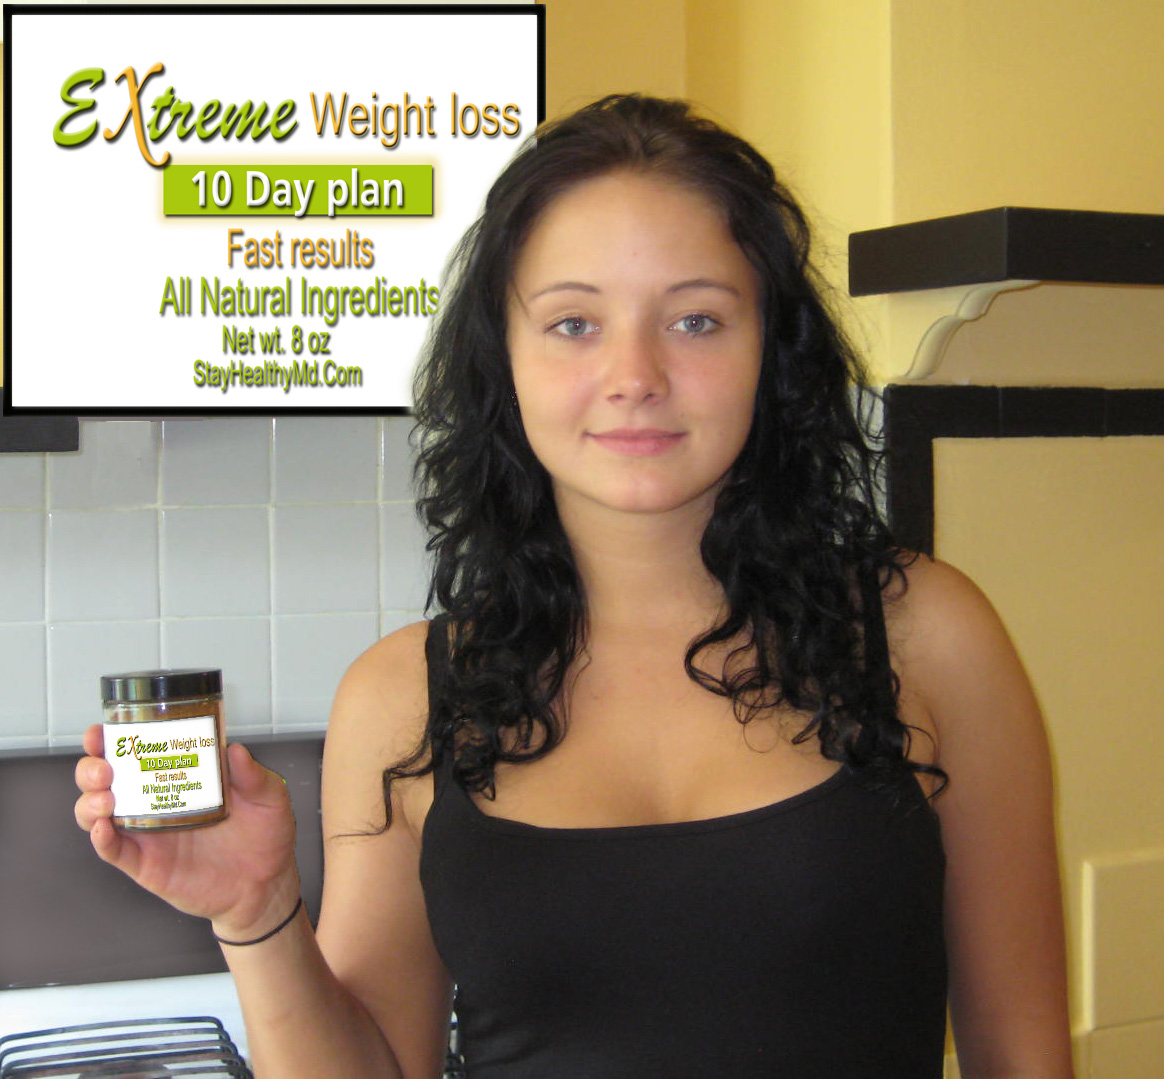 Extreme Weight Loss 10 Day Plan Stayhealthymd